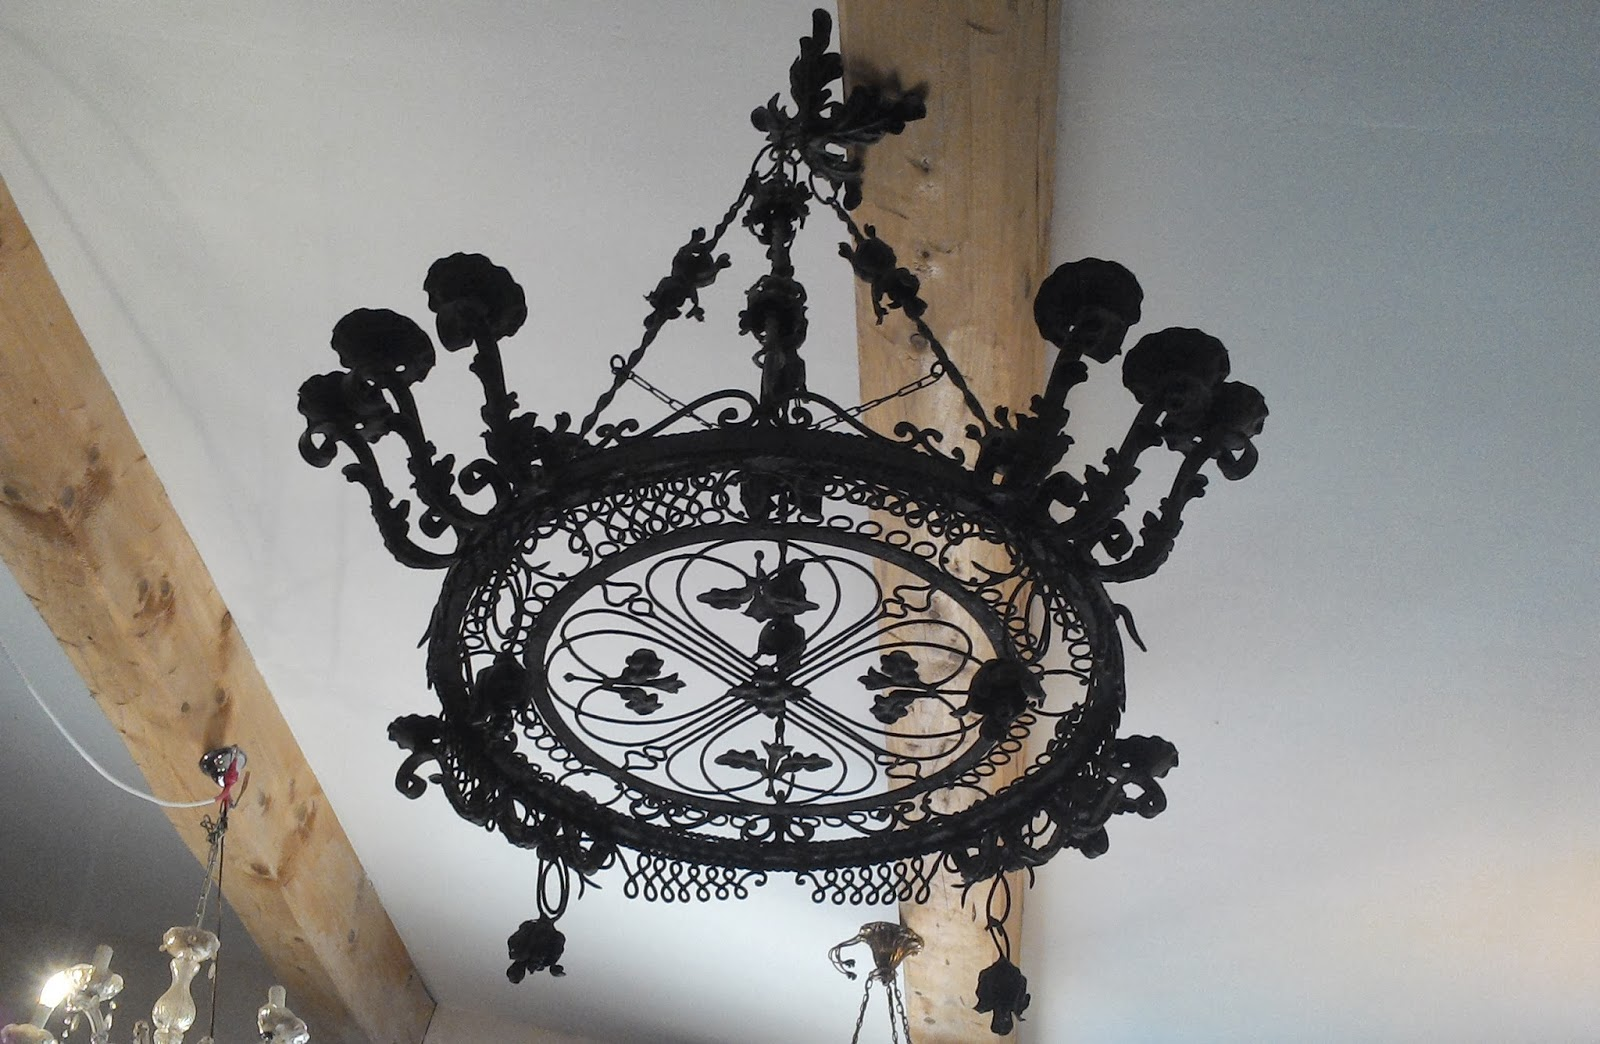 Suspension lustre forg fer ancien - Lustre fer forge ...